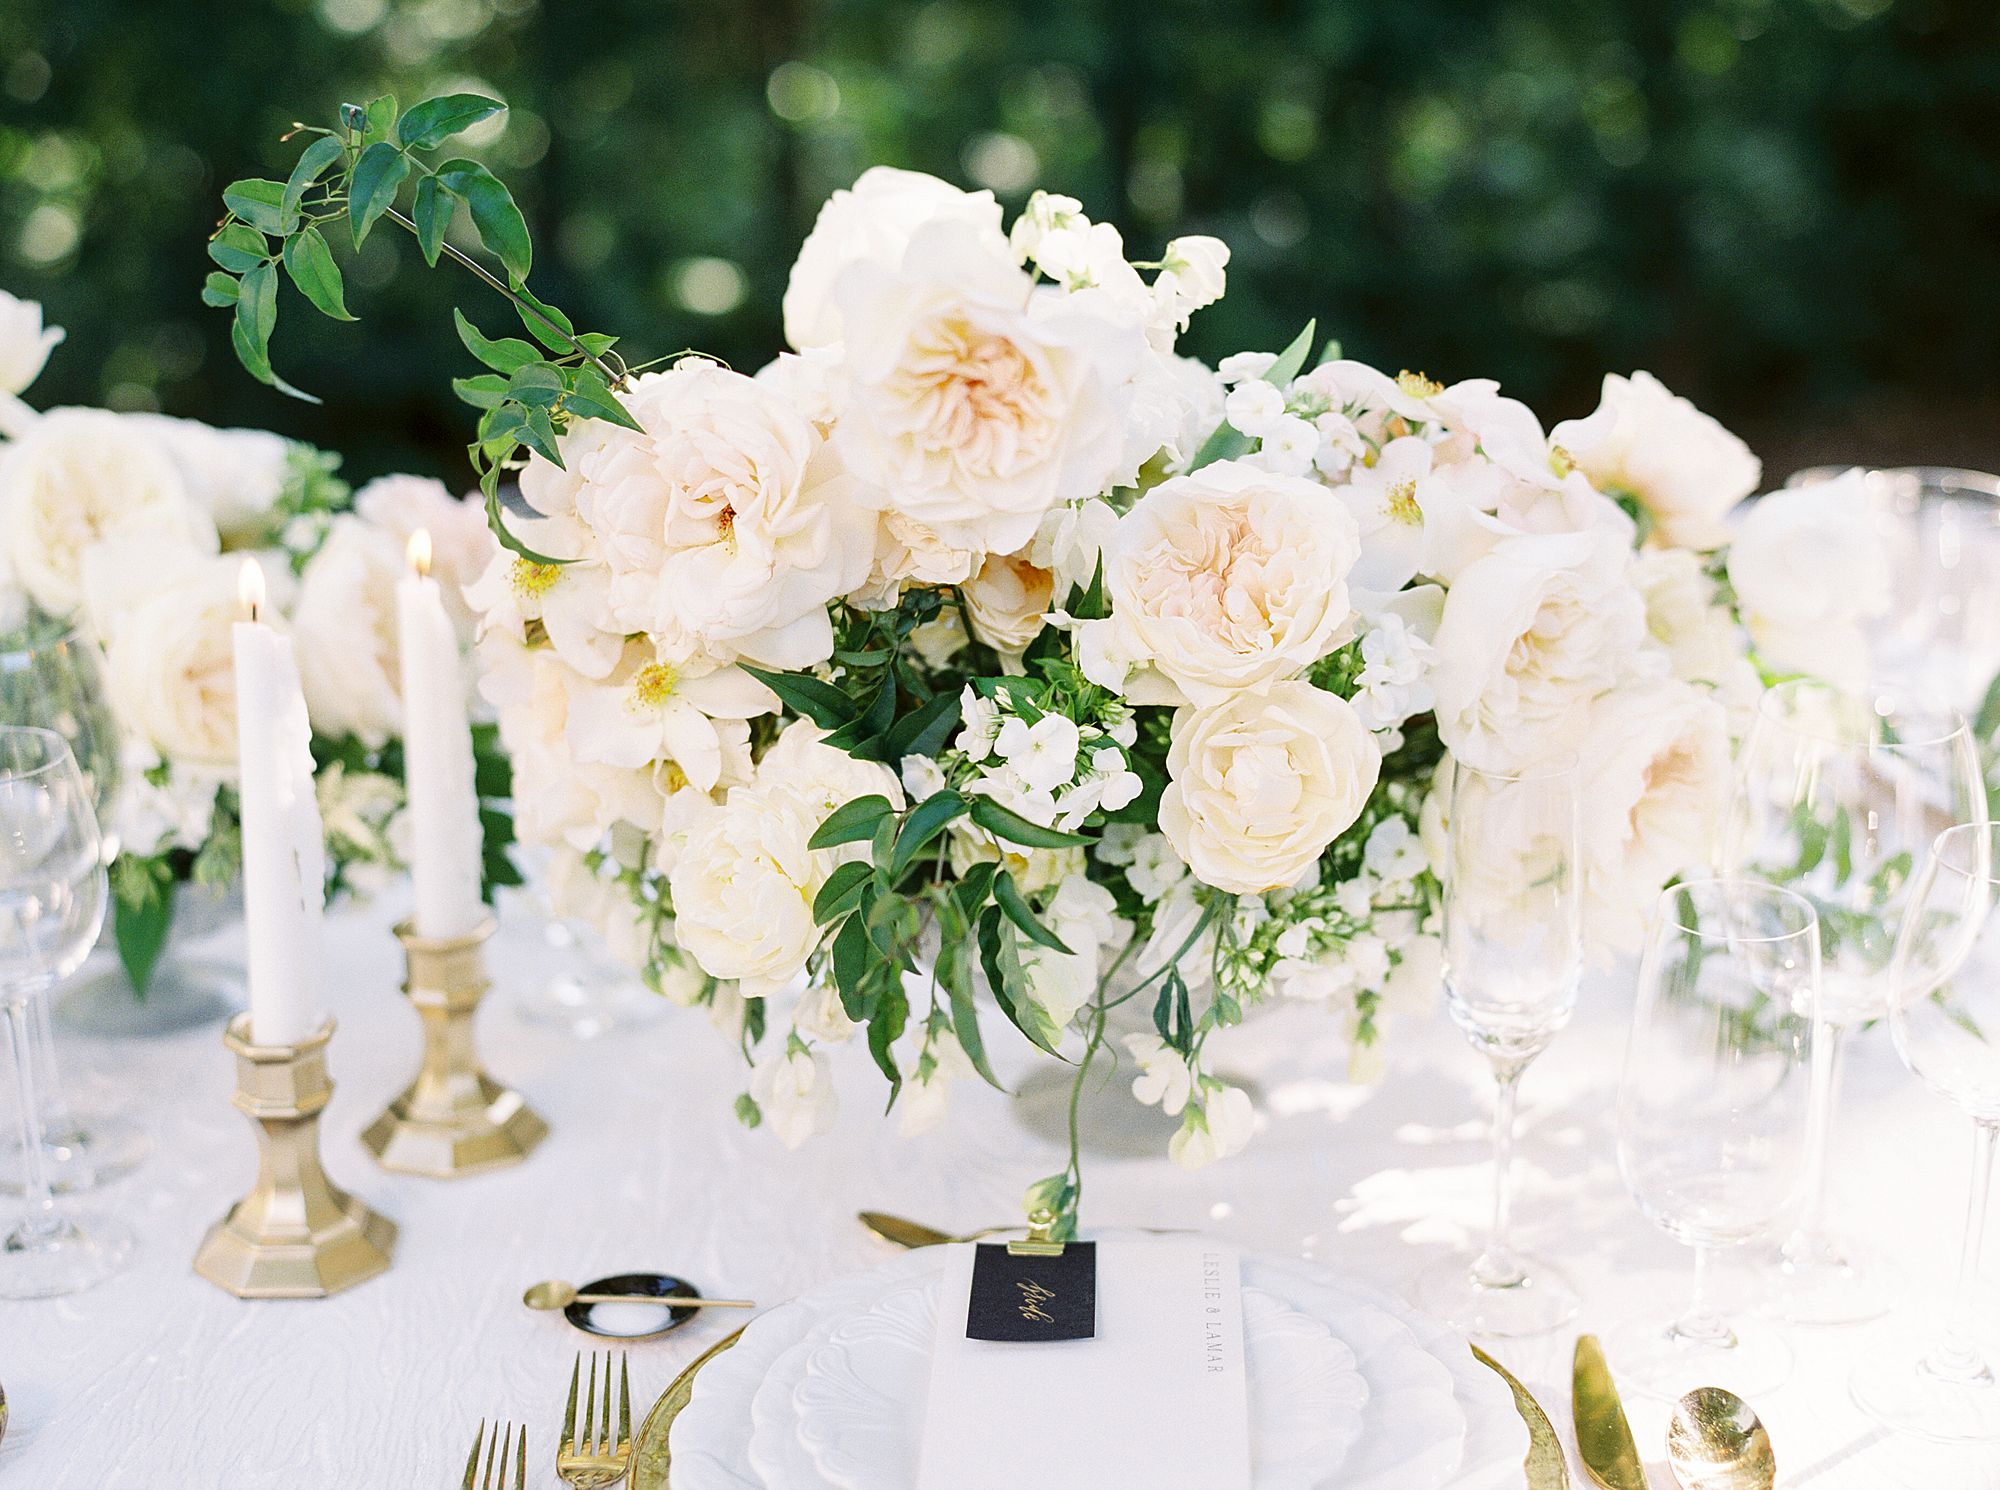 Park Winters Micro-Wedding Inspiration on Style Me Pretty - Stephanie Teague Events - Ashley Baumgartner - Park Winters Wedding - Black Tie Wedding - Micro-Wedding Sacramento Photographer_0074.jpg